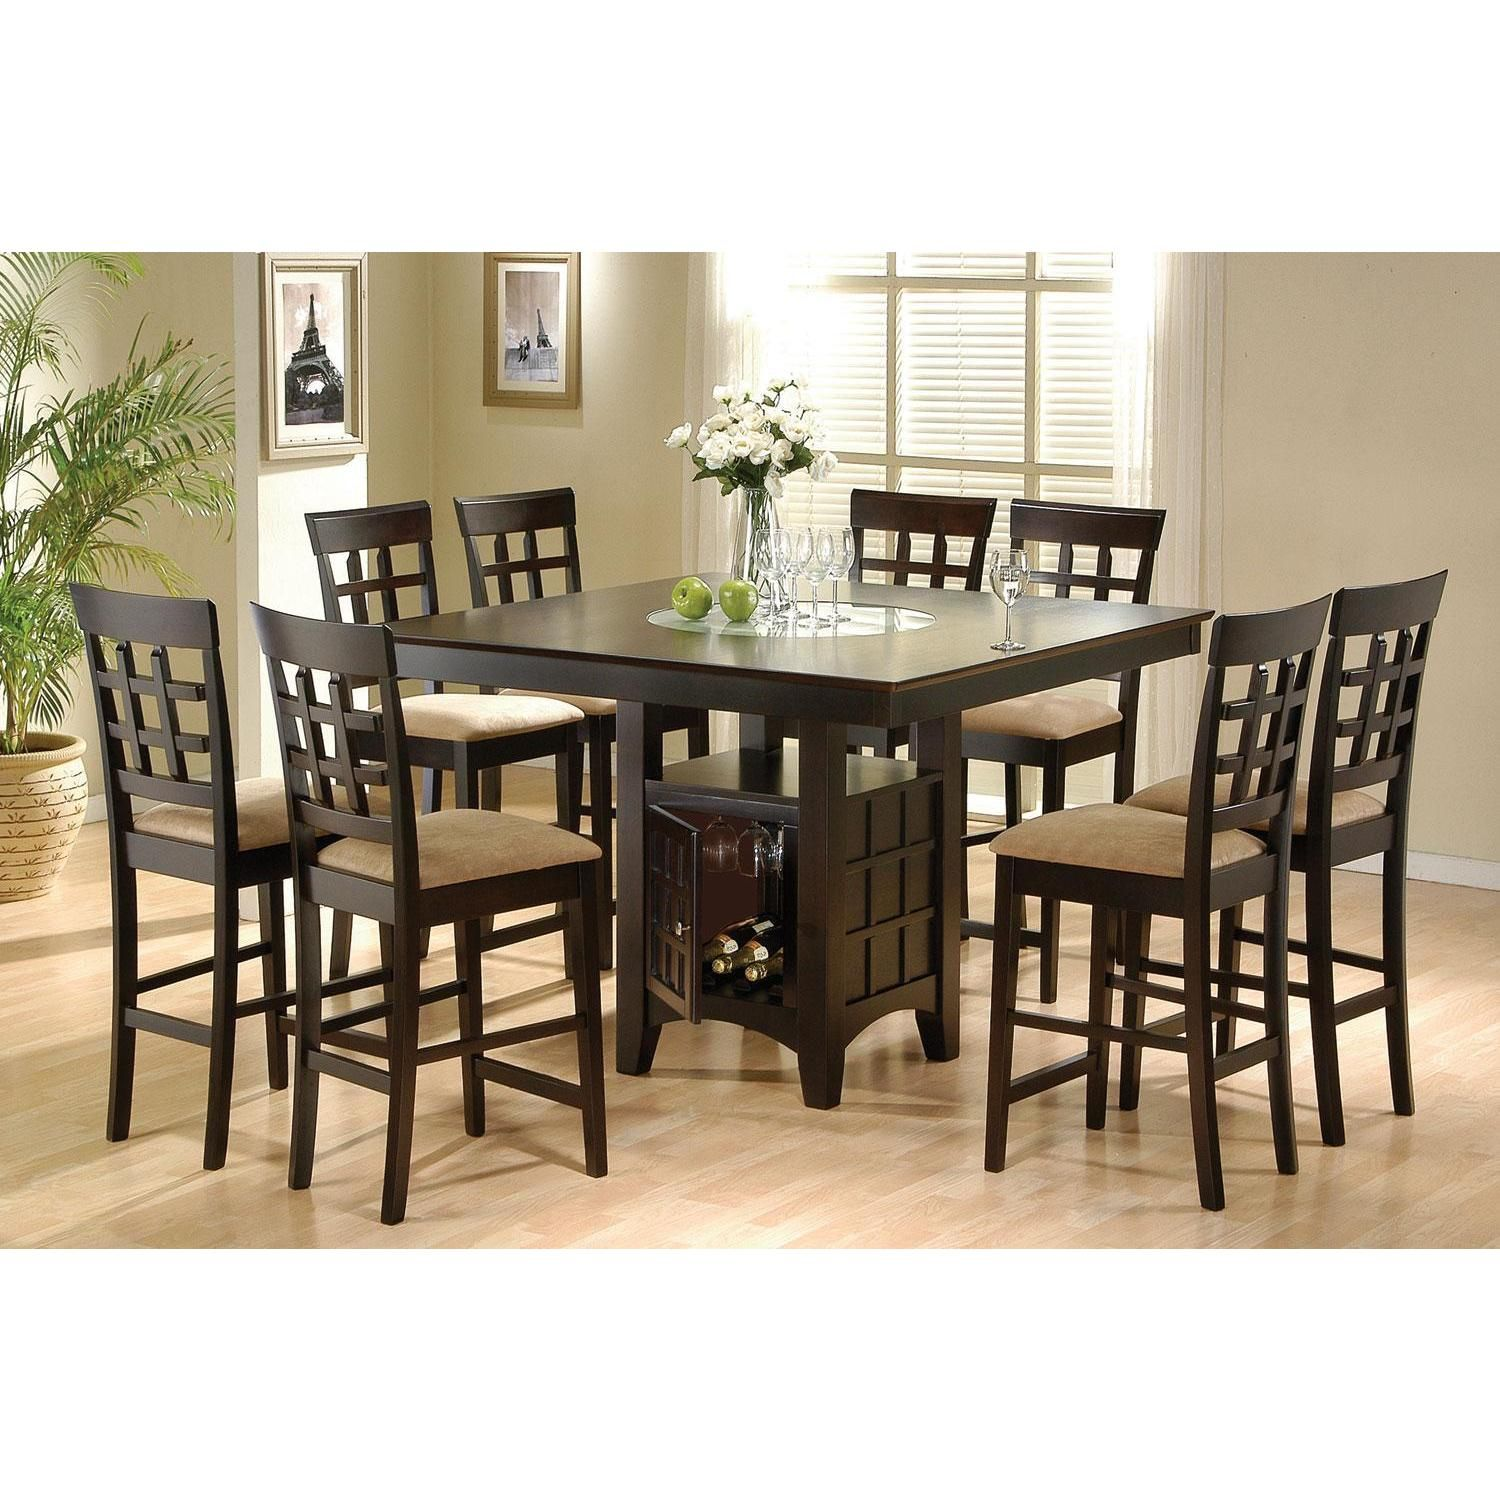 West Caraway 9 Piece Dining Set Square Dining Tables Counter